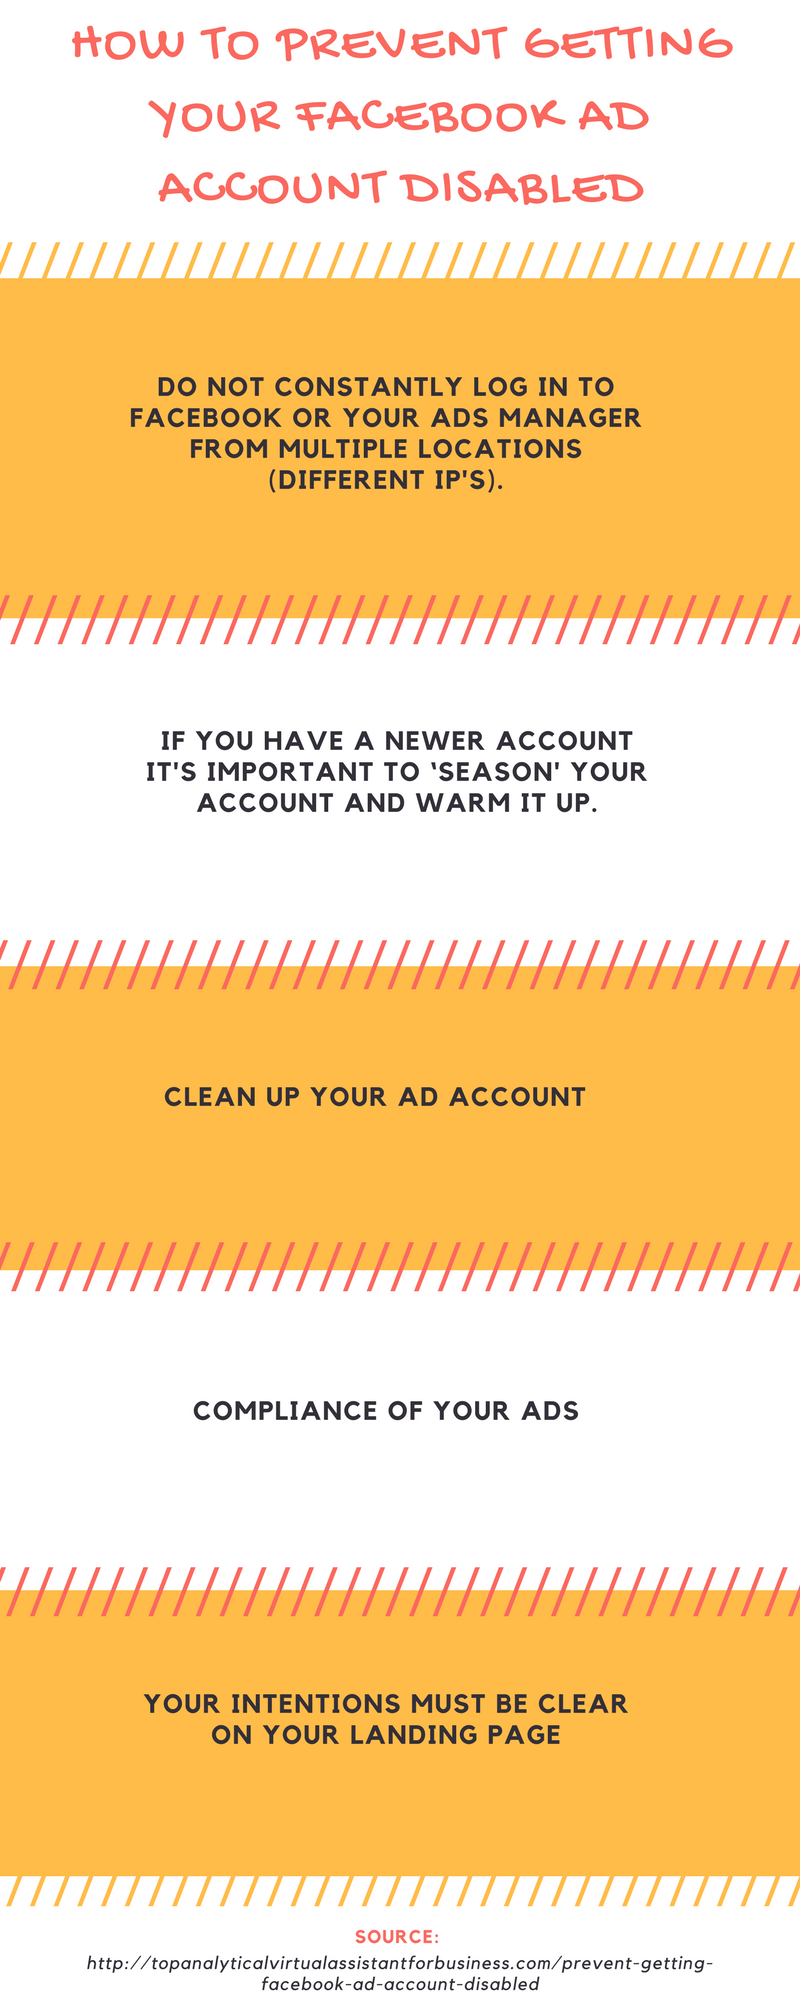 How To Prevent Getting Your Facebook Ad Account Disabled - Your